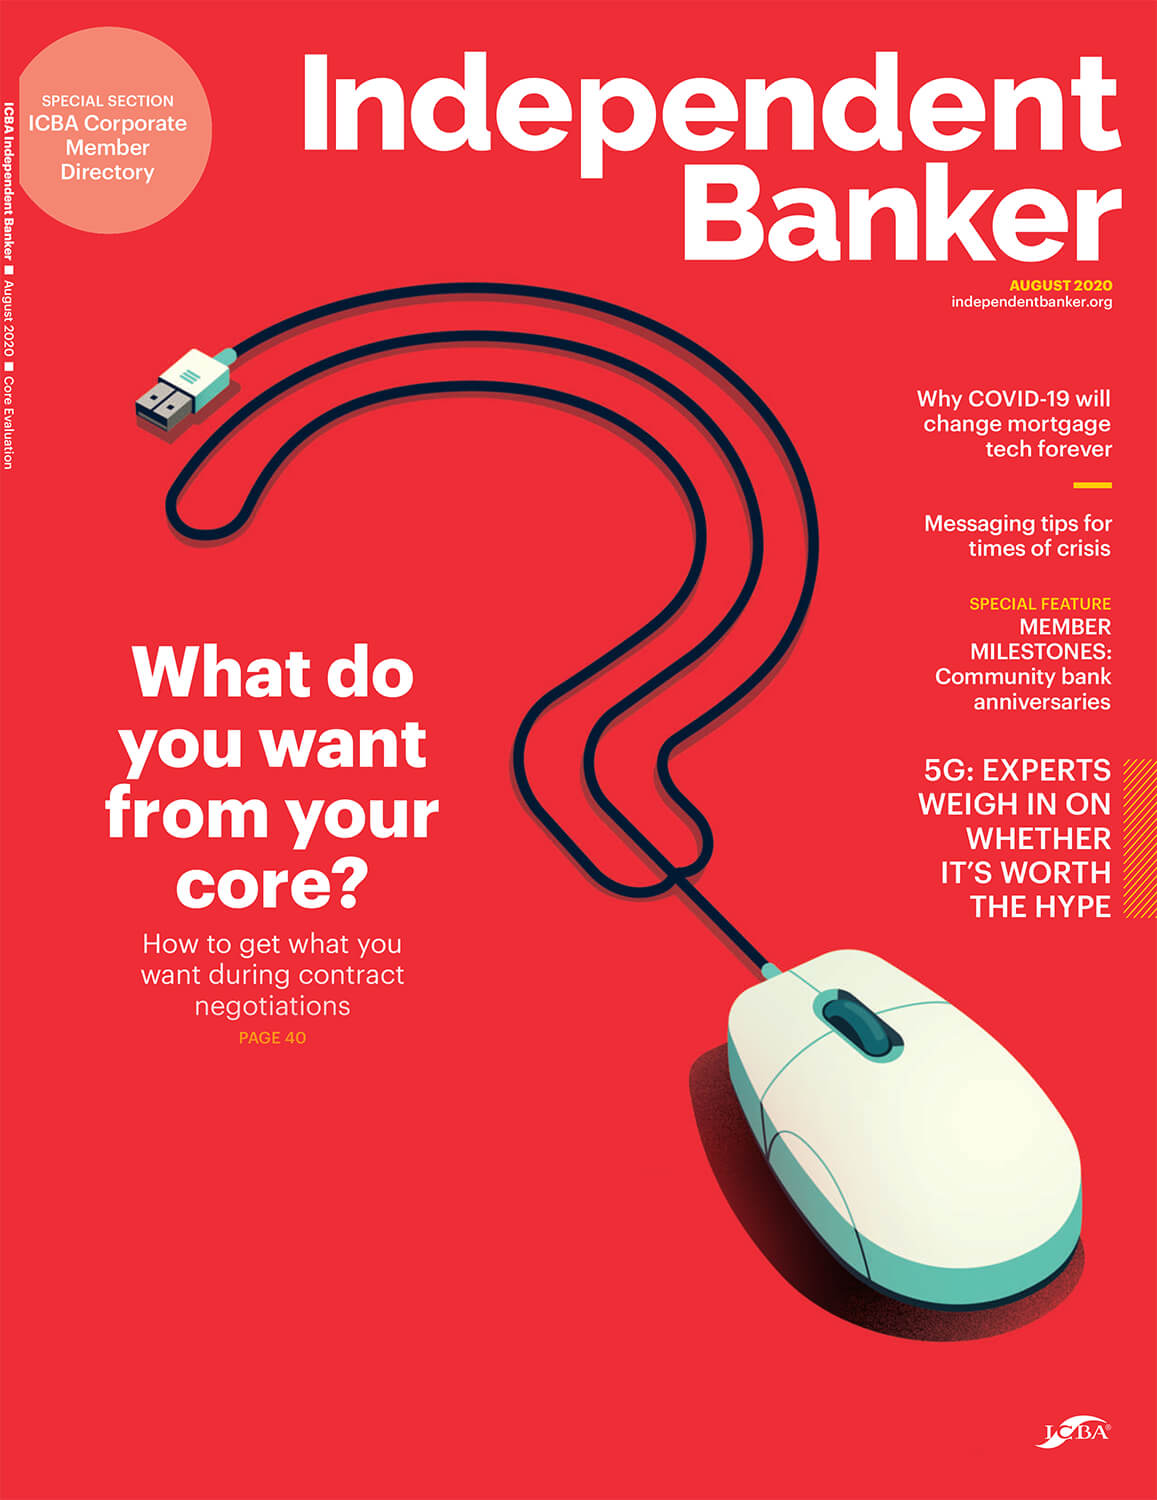 Independent Banker August 2020